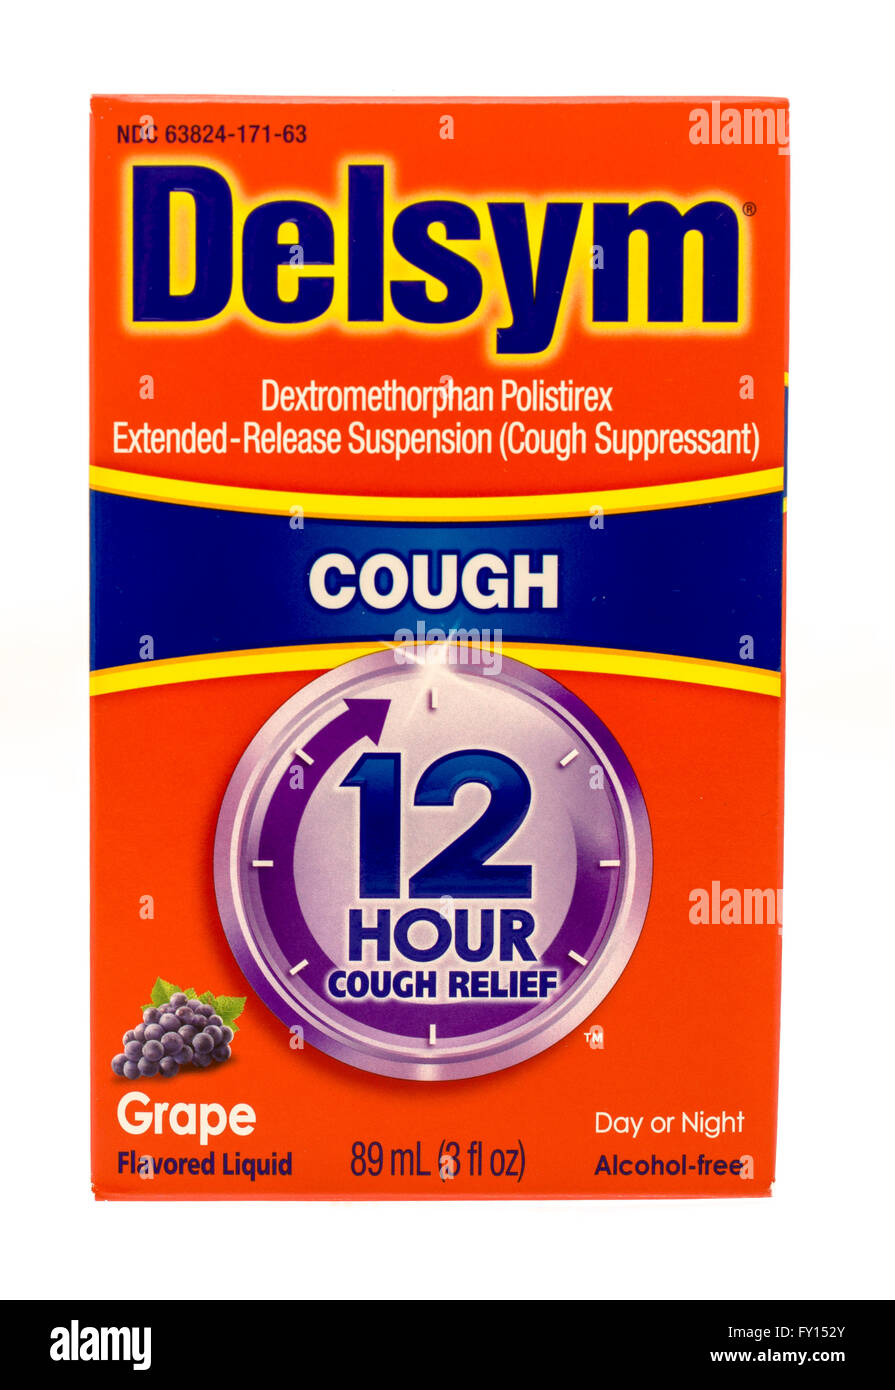 Winneconne, WI -1 Oct 2015:  Box of Delsym cough suppressant medicine. - Stock Image